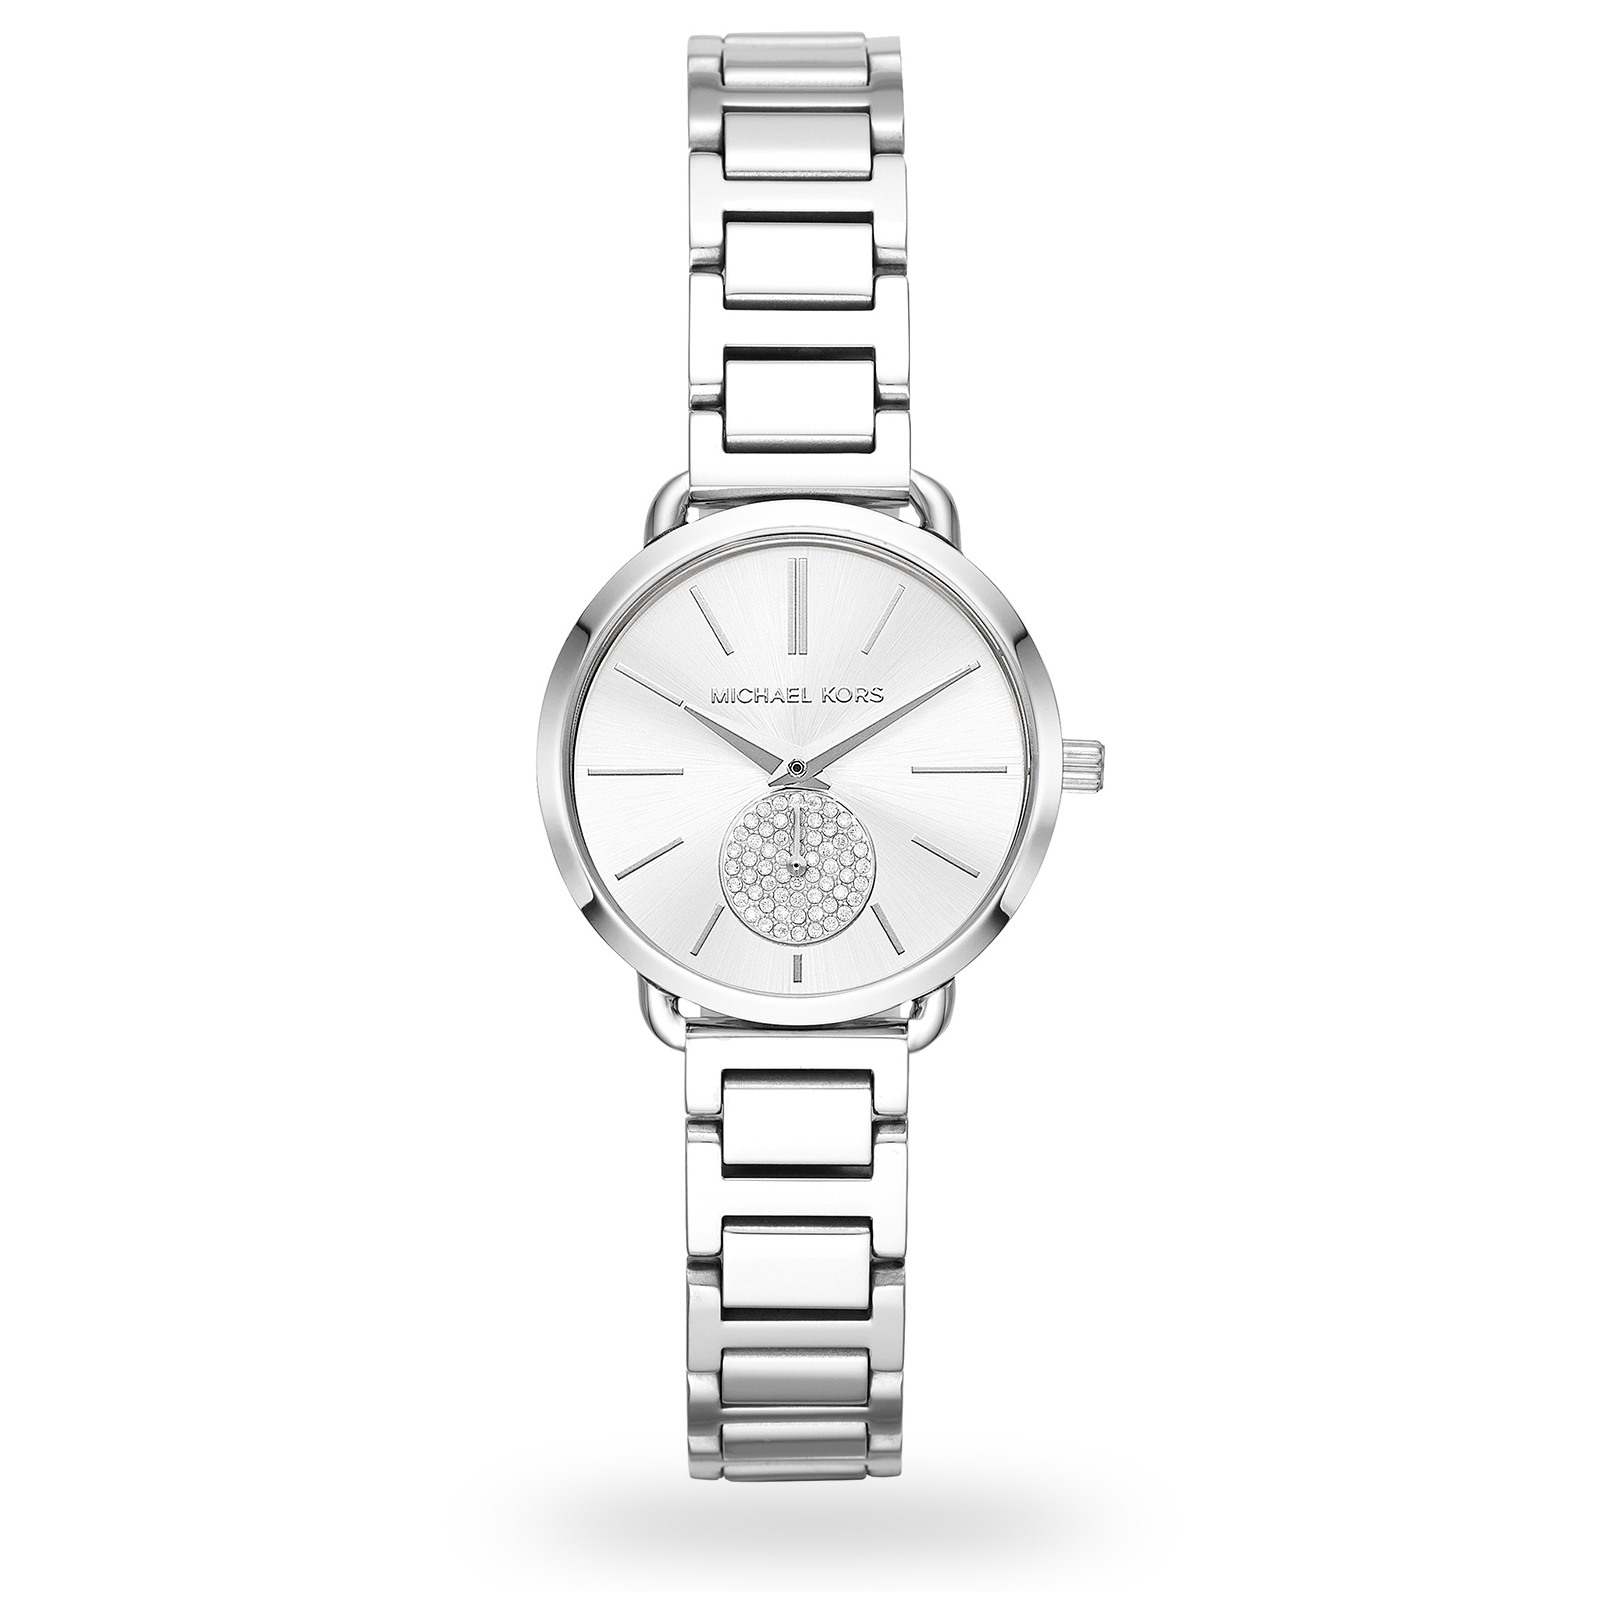 Michael Kors Petite Portia Ladies Watch MK3837